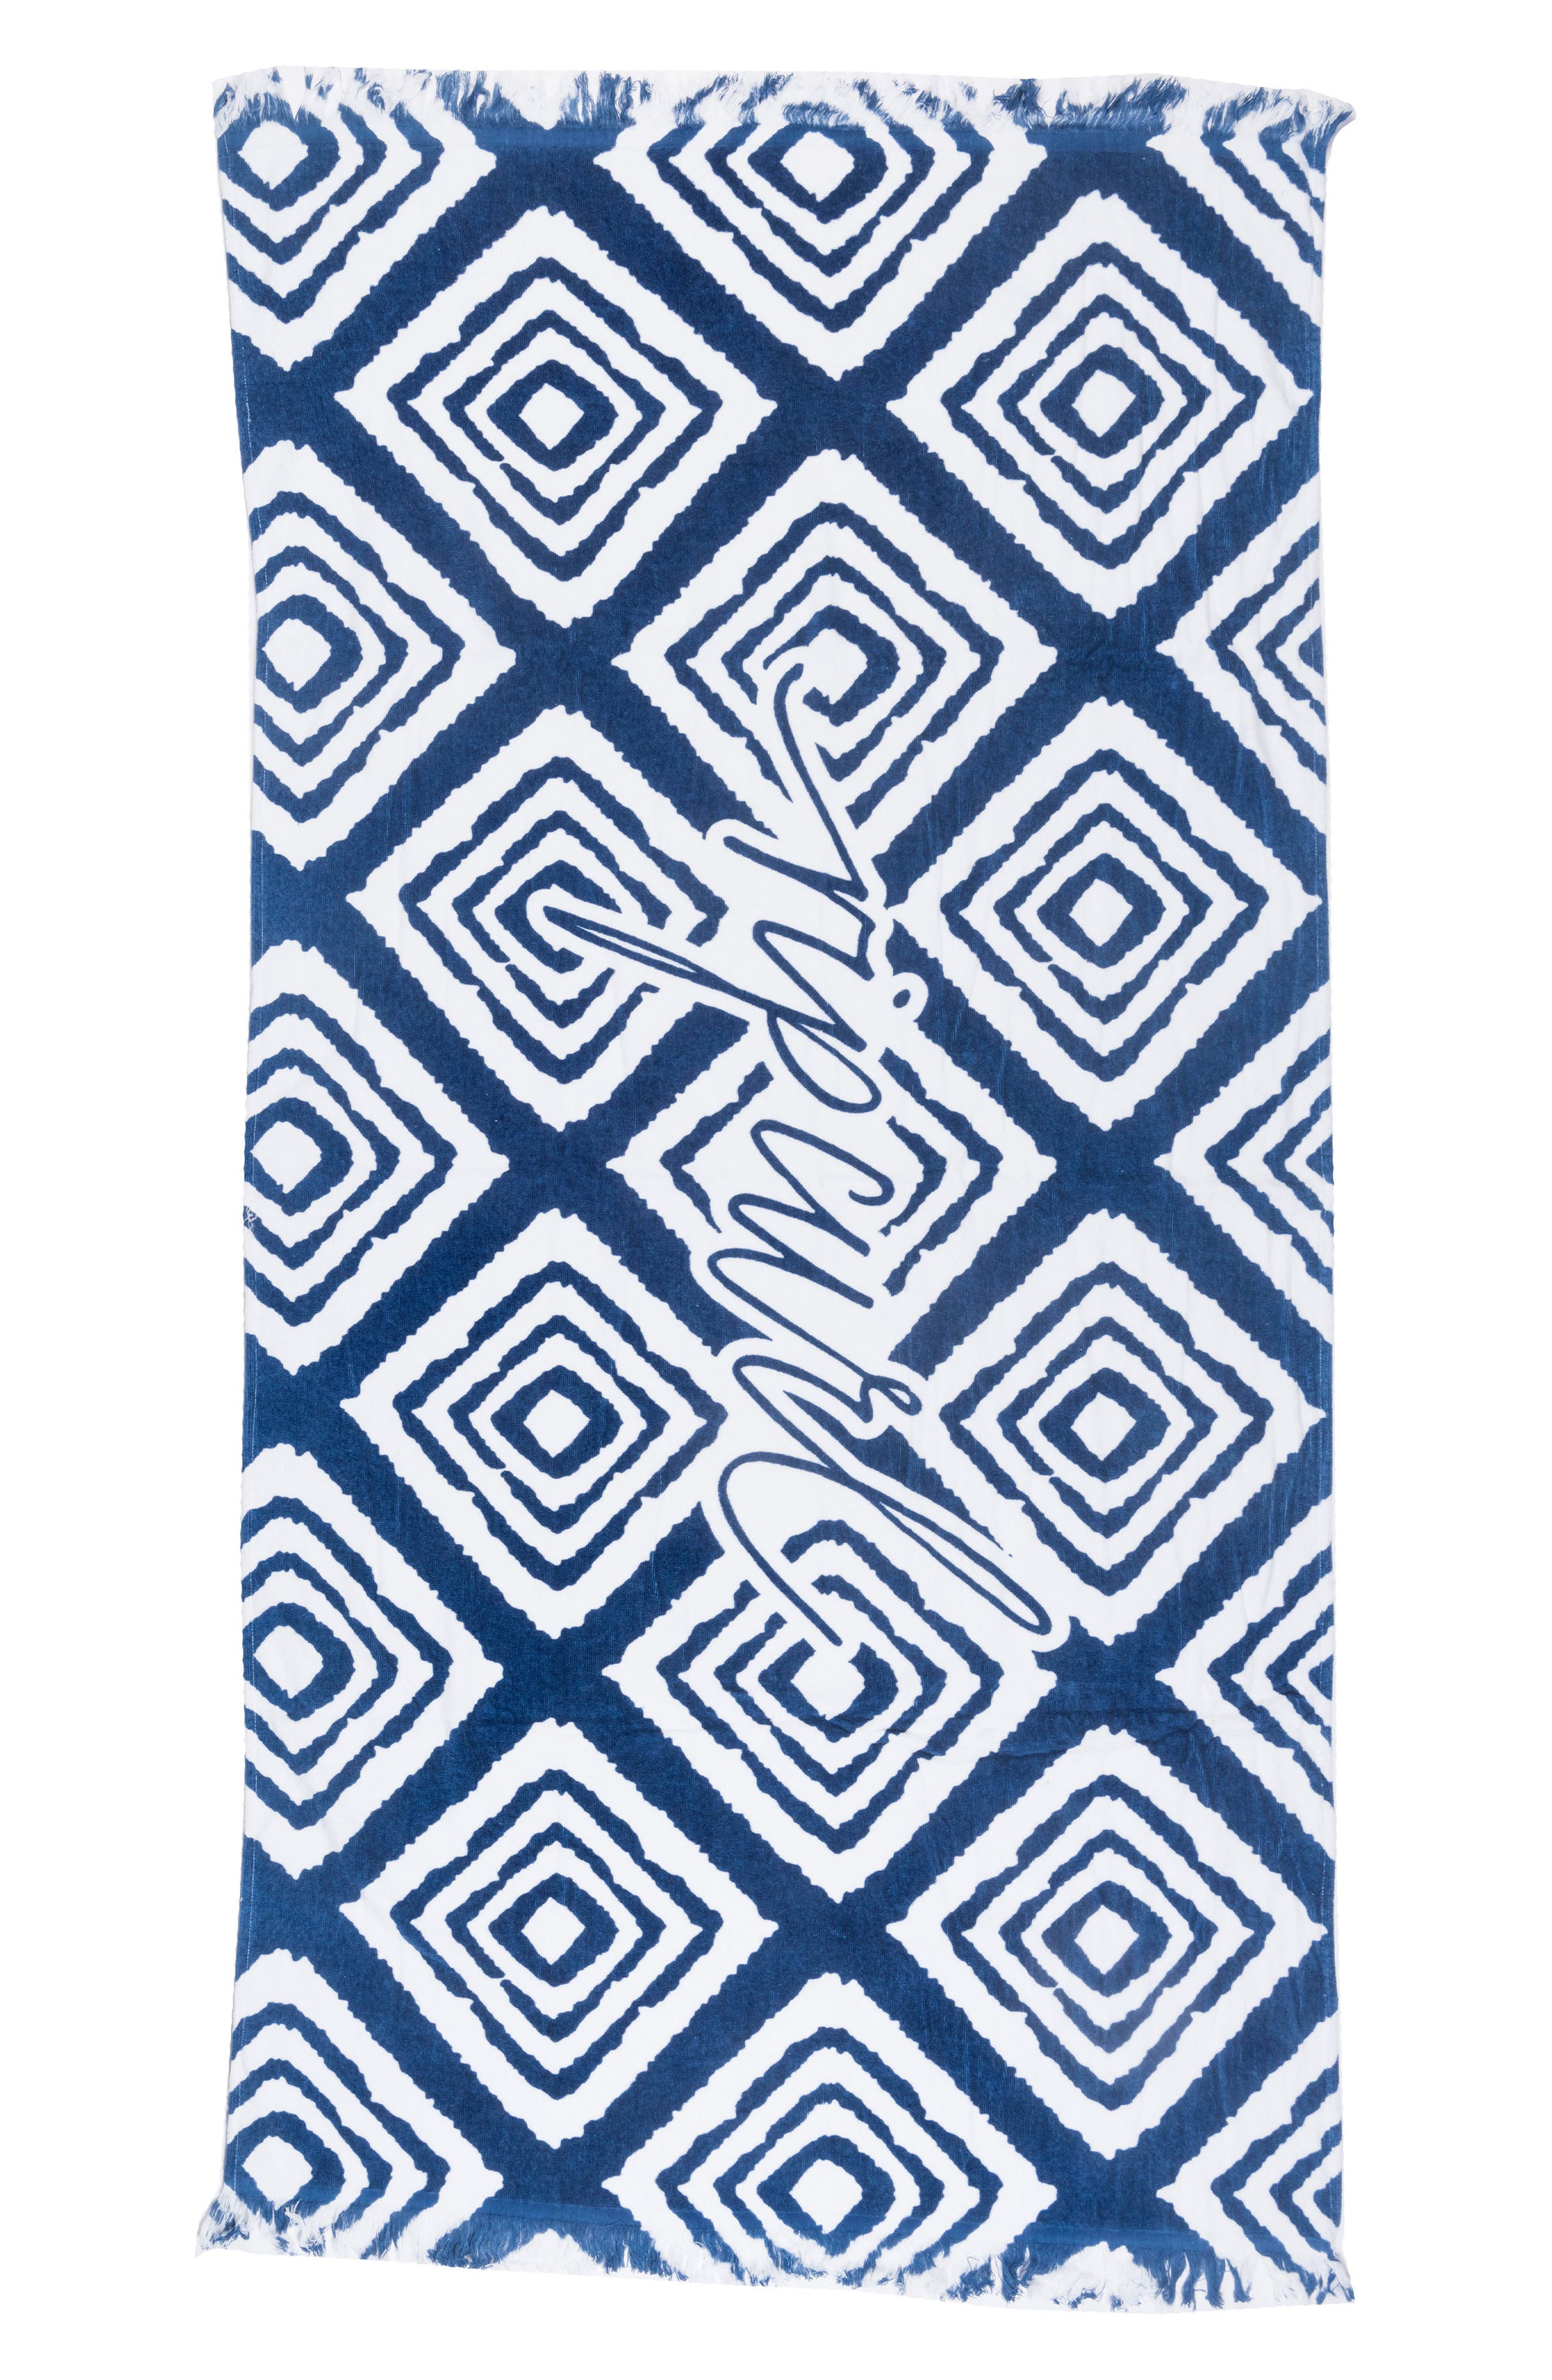 Bazaar Beach Towel,                         Main,                         color, 400